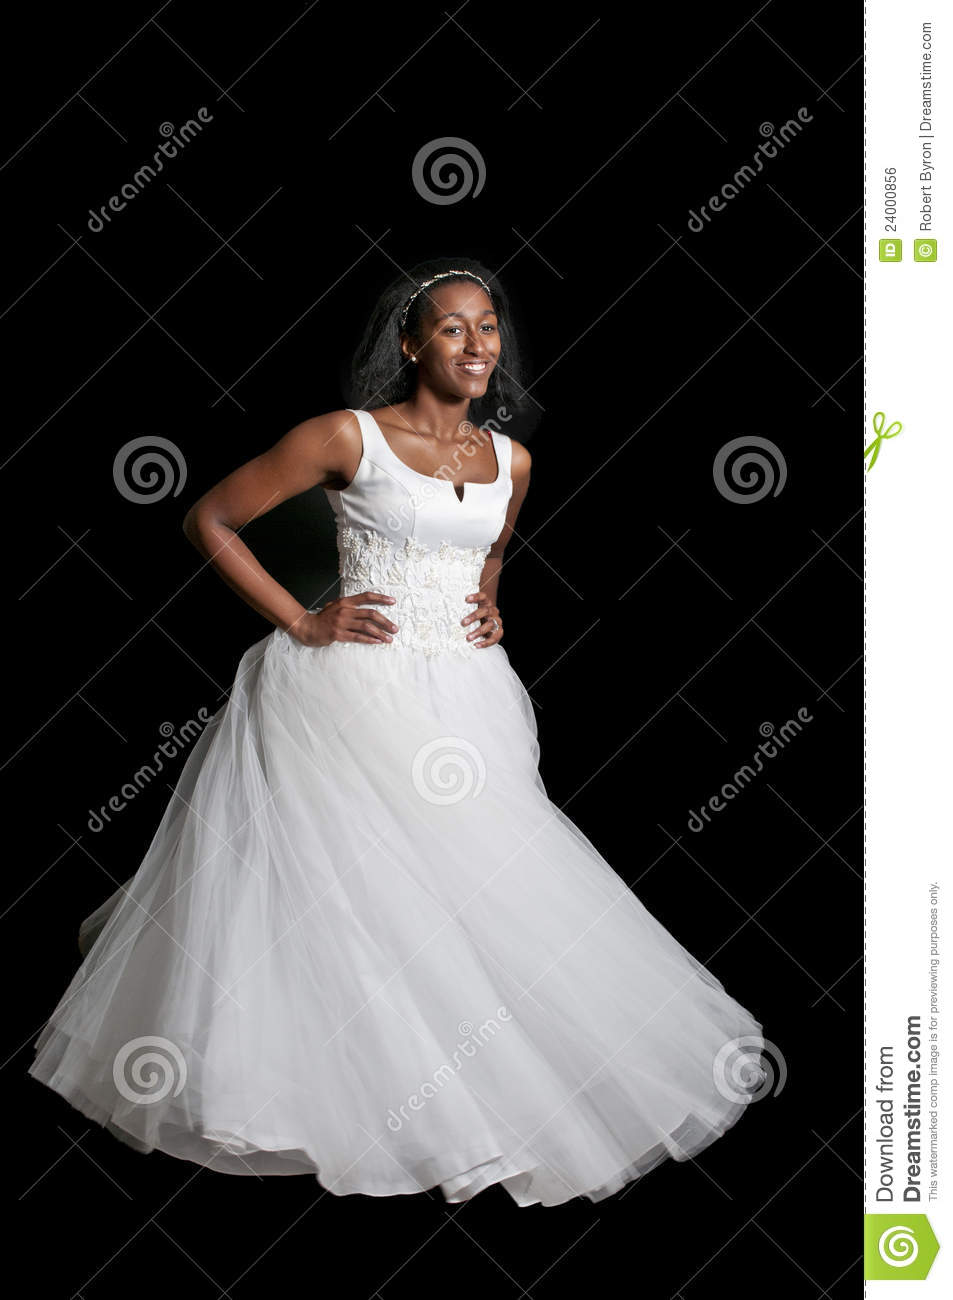 Black Woman In Wedding Dress Stock Photo - Image of married ...